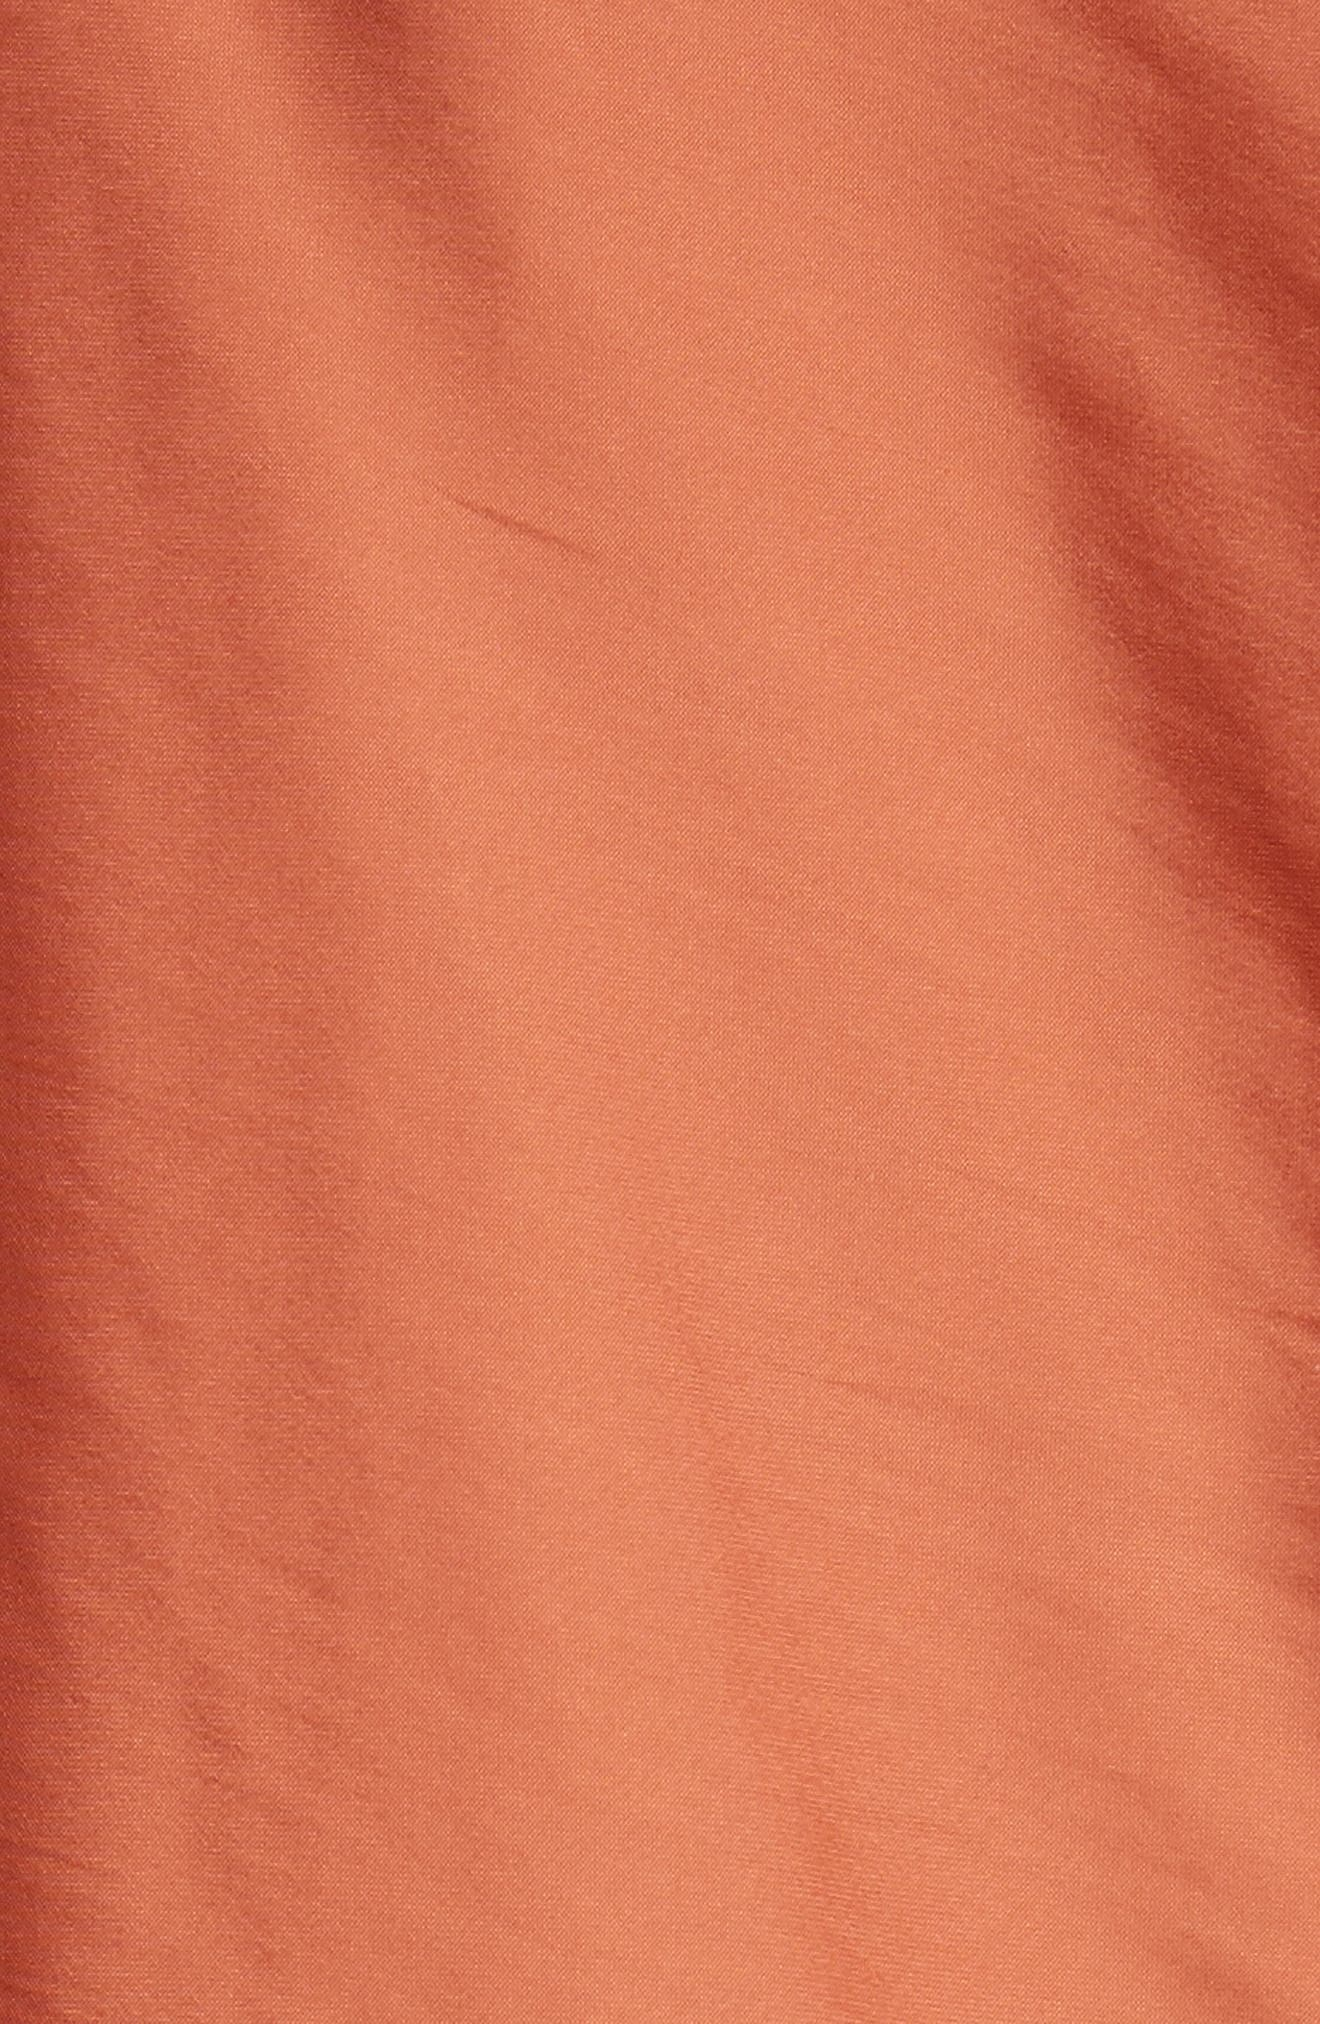 Drape Blouse,                             Alternate thumbnail 7, color,                             Tumeric